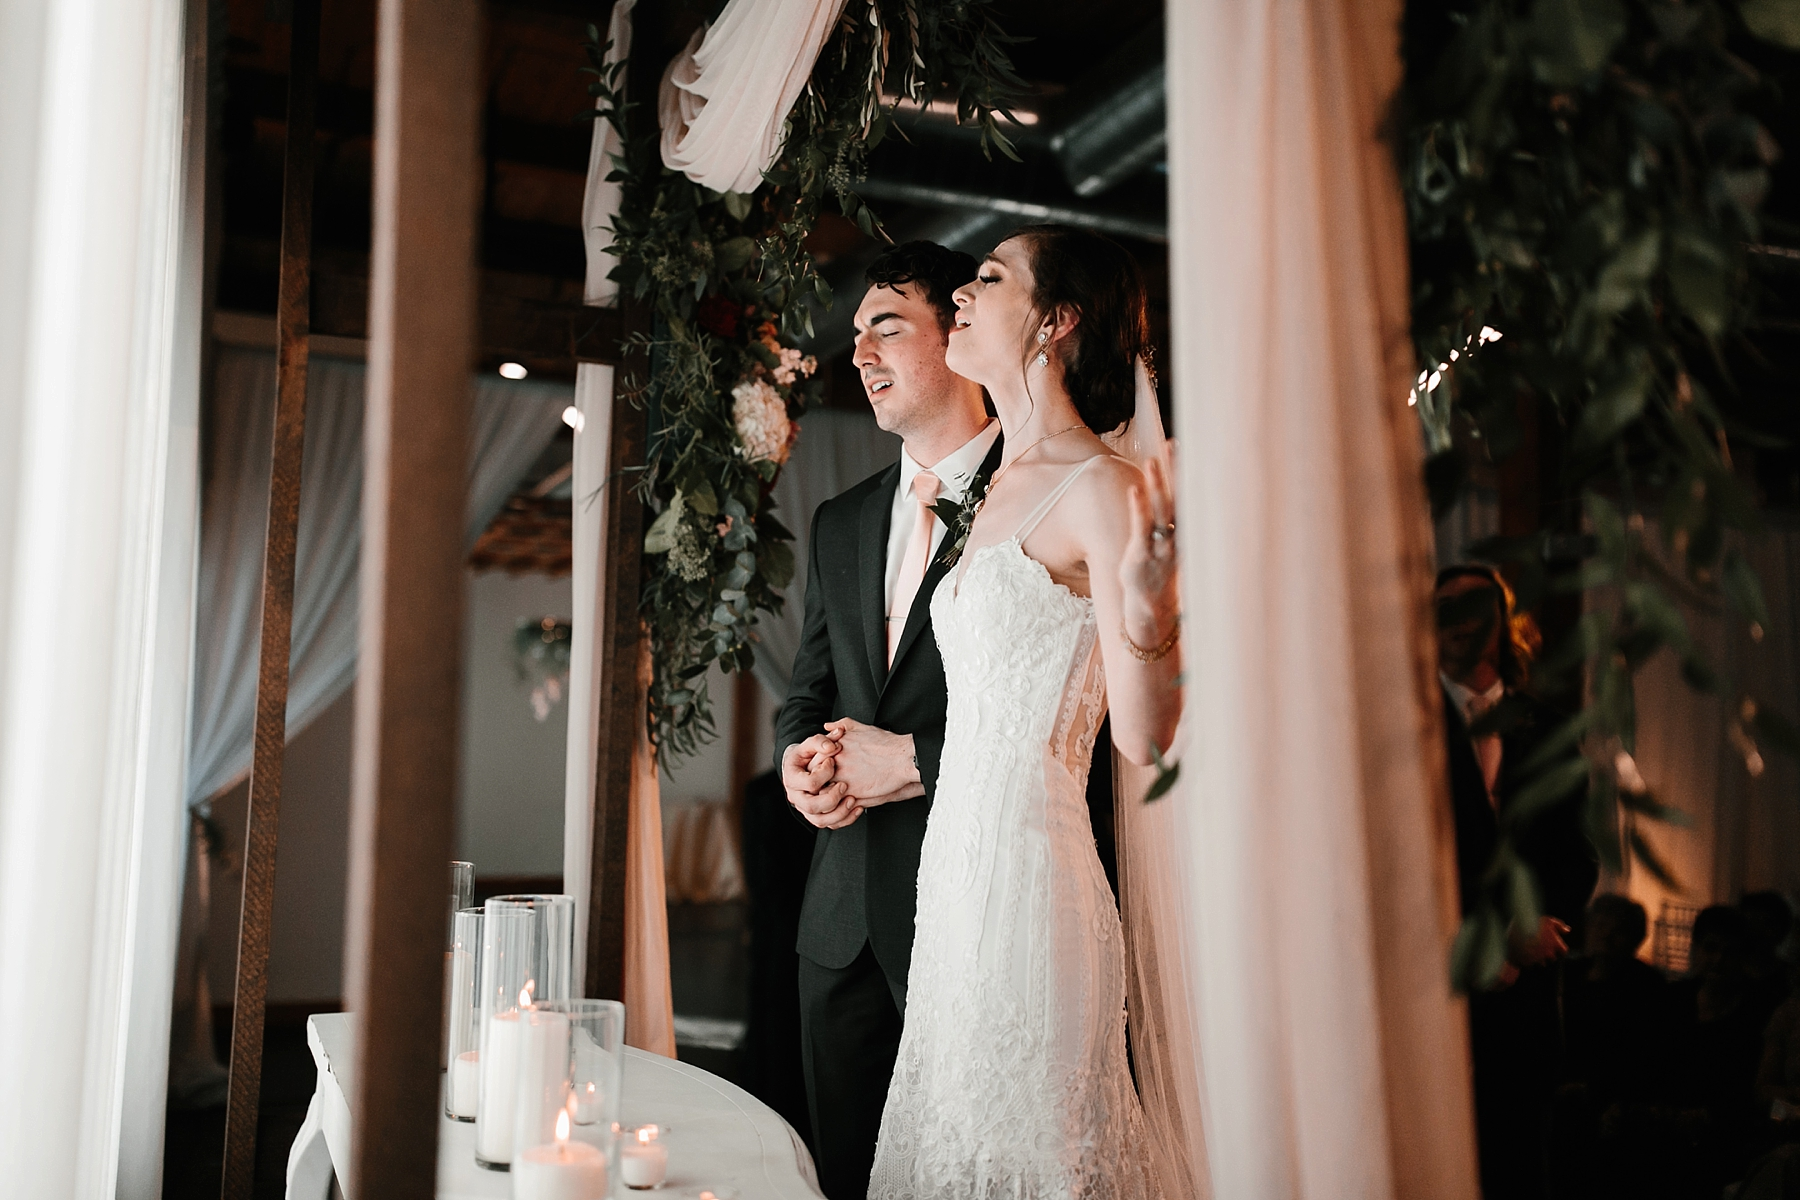 Emily + Caleb _ an elegant, intentional, industrial style wedding with navy + gold accents at 6500 in Dallas, TX by North Texas Wedding Photographer Rachel Meagan Photography _ 095